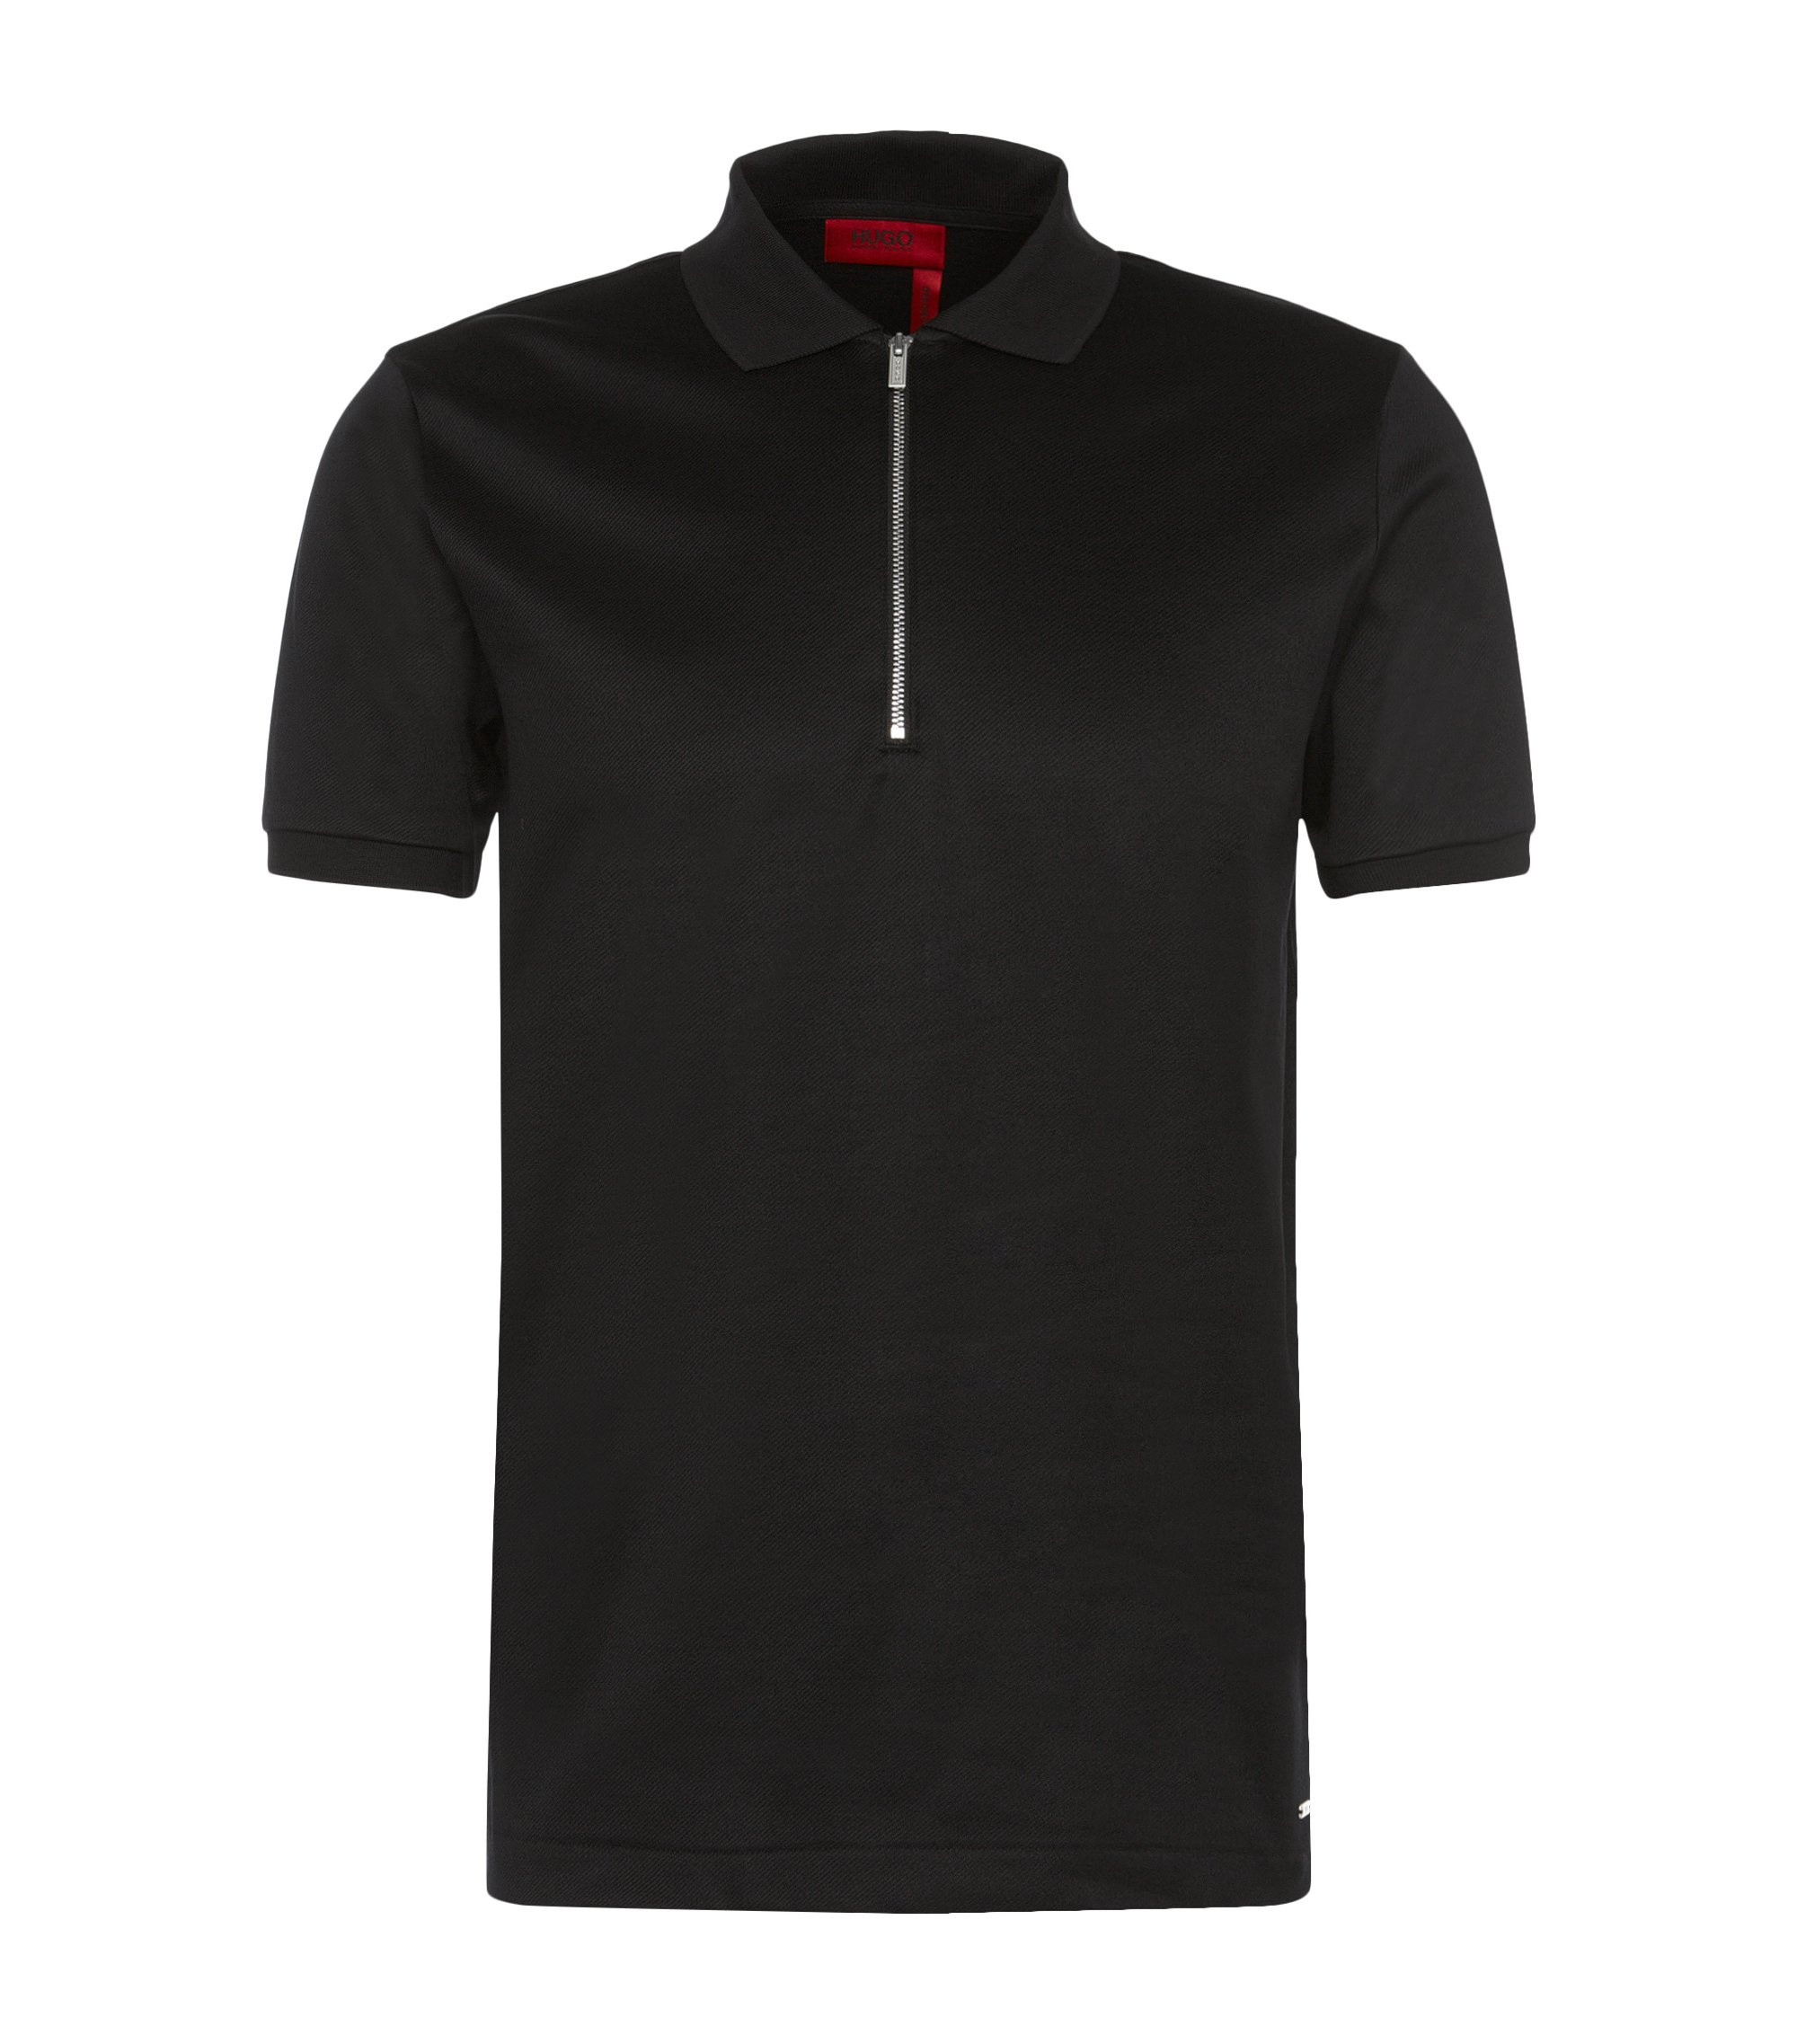 Mercerized Cotton Twill Polo Shirt, Regular Fit | Digato, Black